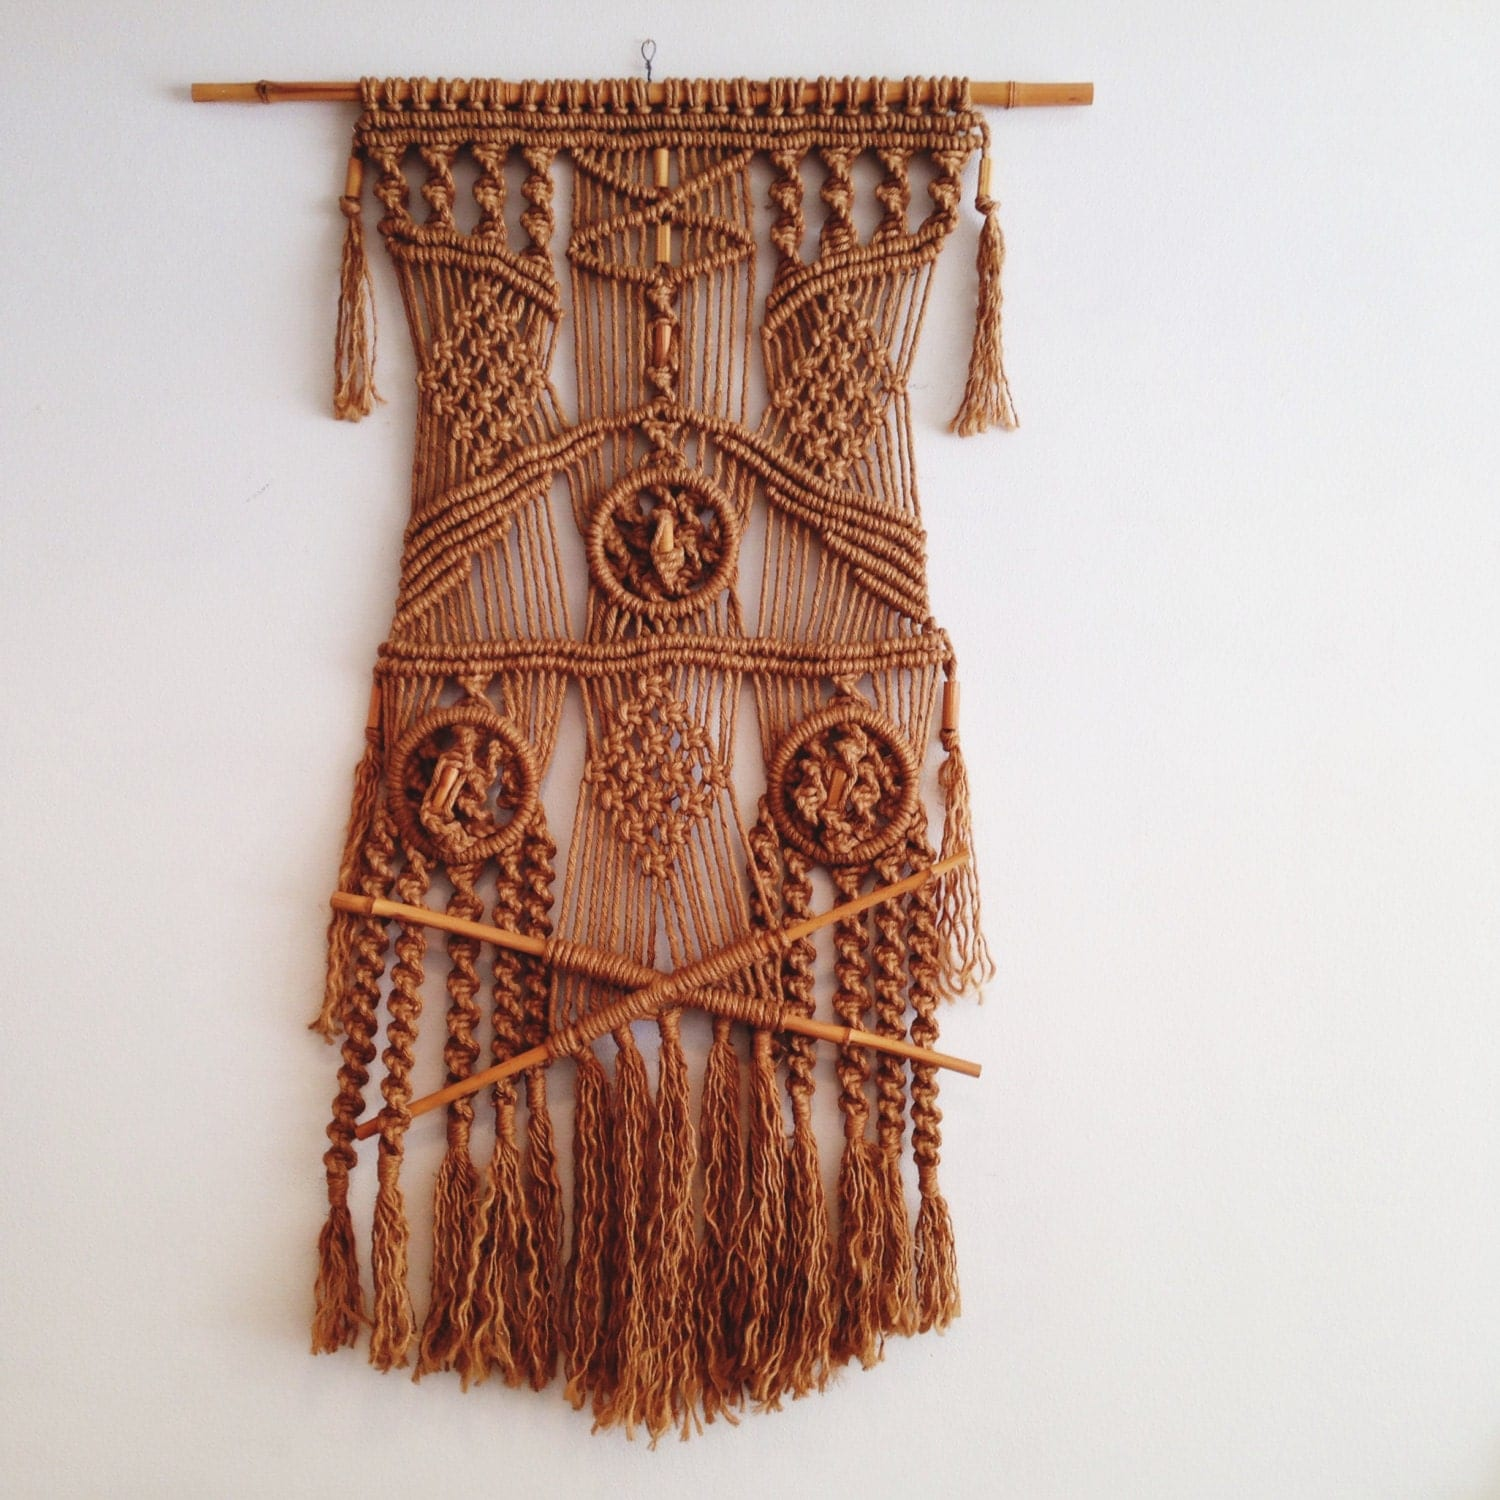 Giant Vintage 1970's Macrame Wall Hanging / Textile Piece, Art ...